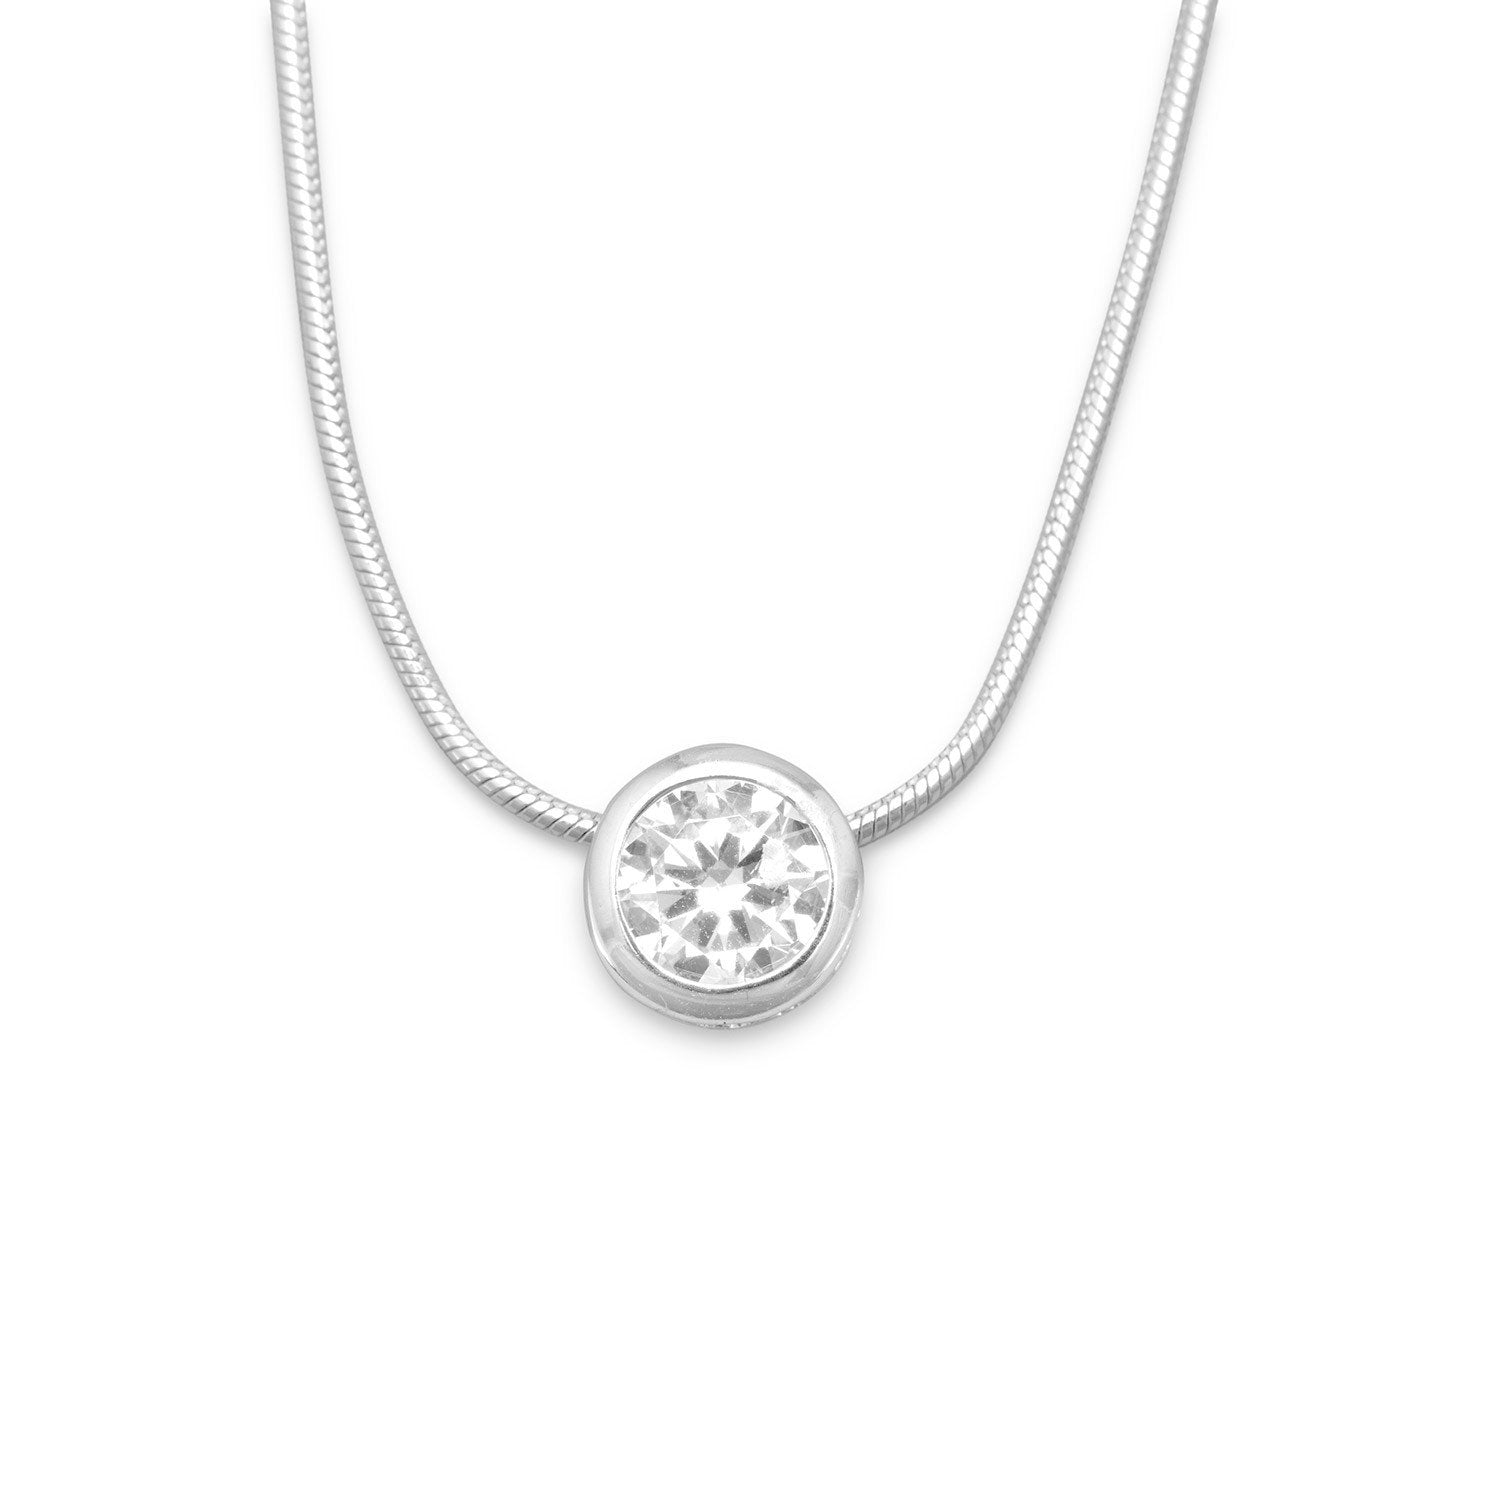 "16"" Necklace with 7mm Bezel Set CZ Slide - Rocky Mt. Outlet Inc - Shop & Save 24/7"